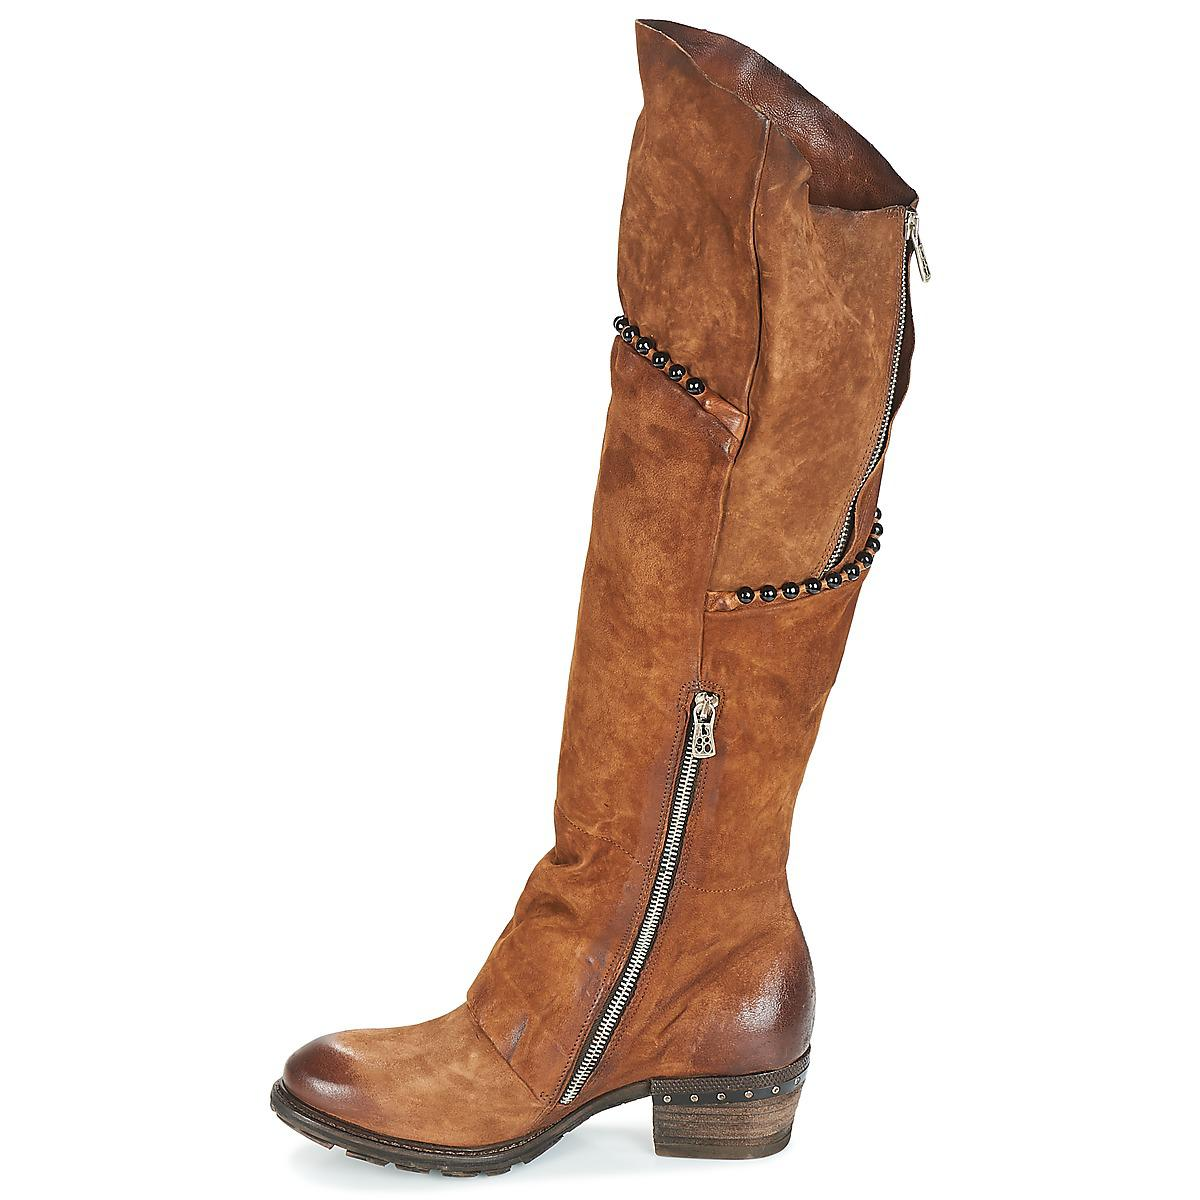 A.s.98 Leather Corn 18 High Boots in Brown